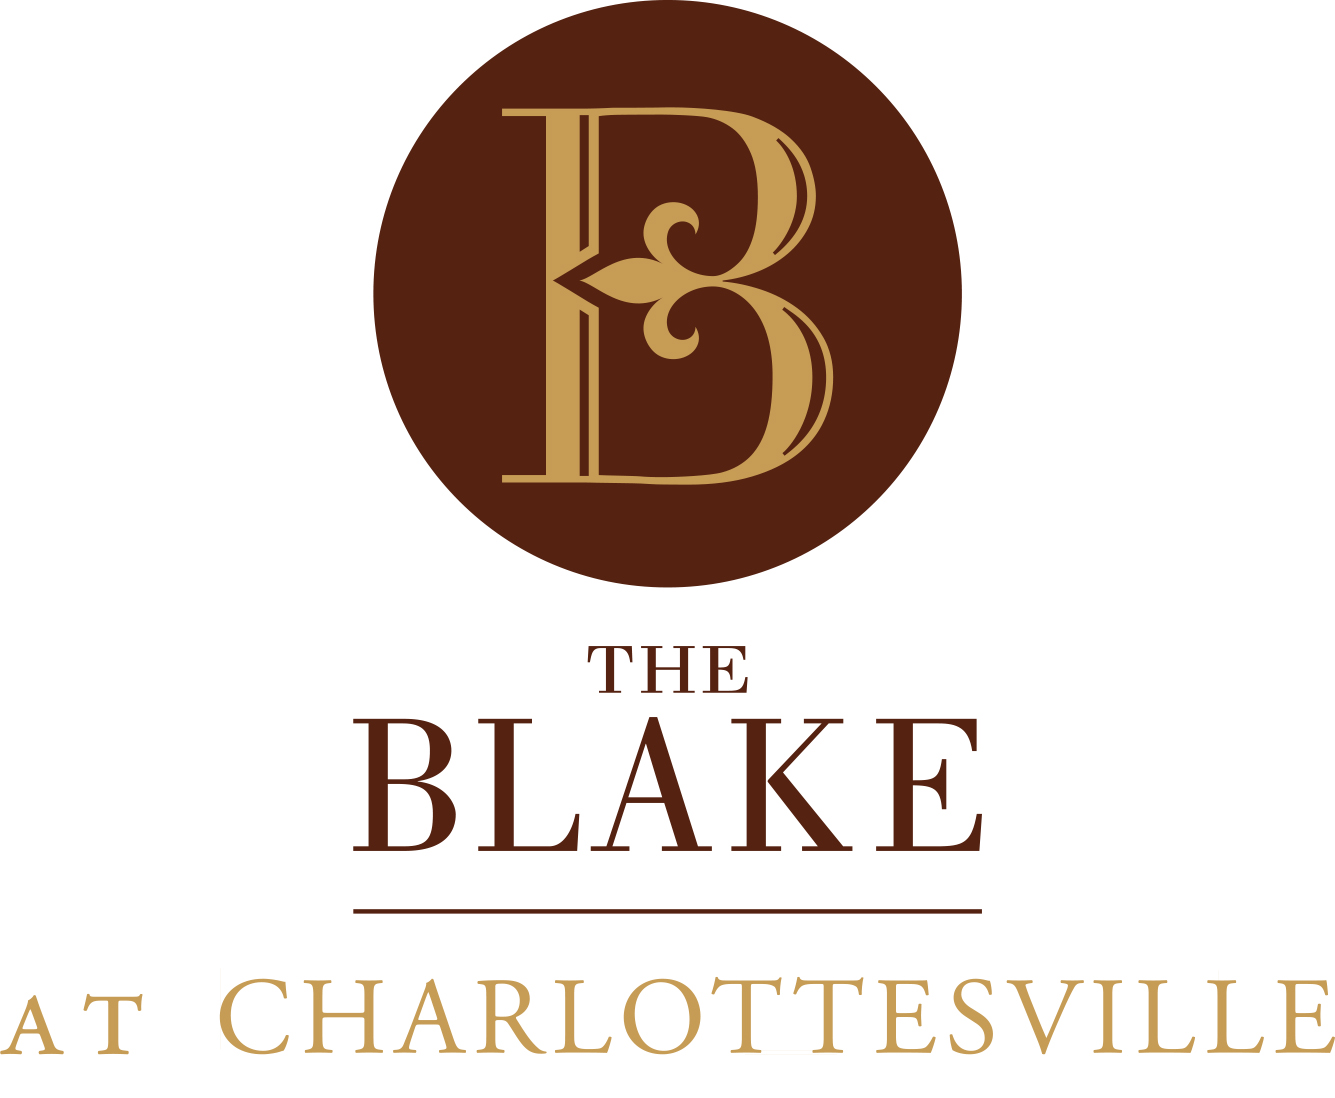 M. The Blake at Charlottesville (Silver)